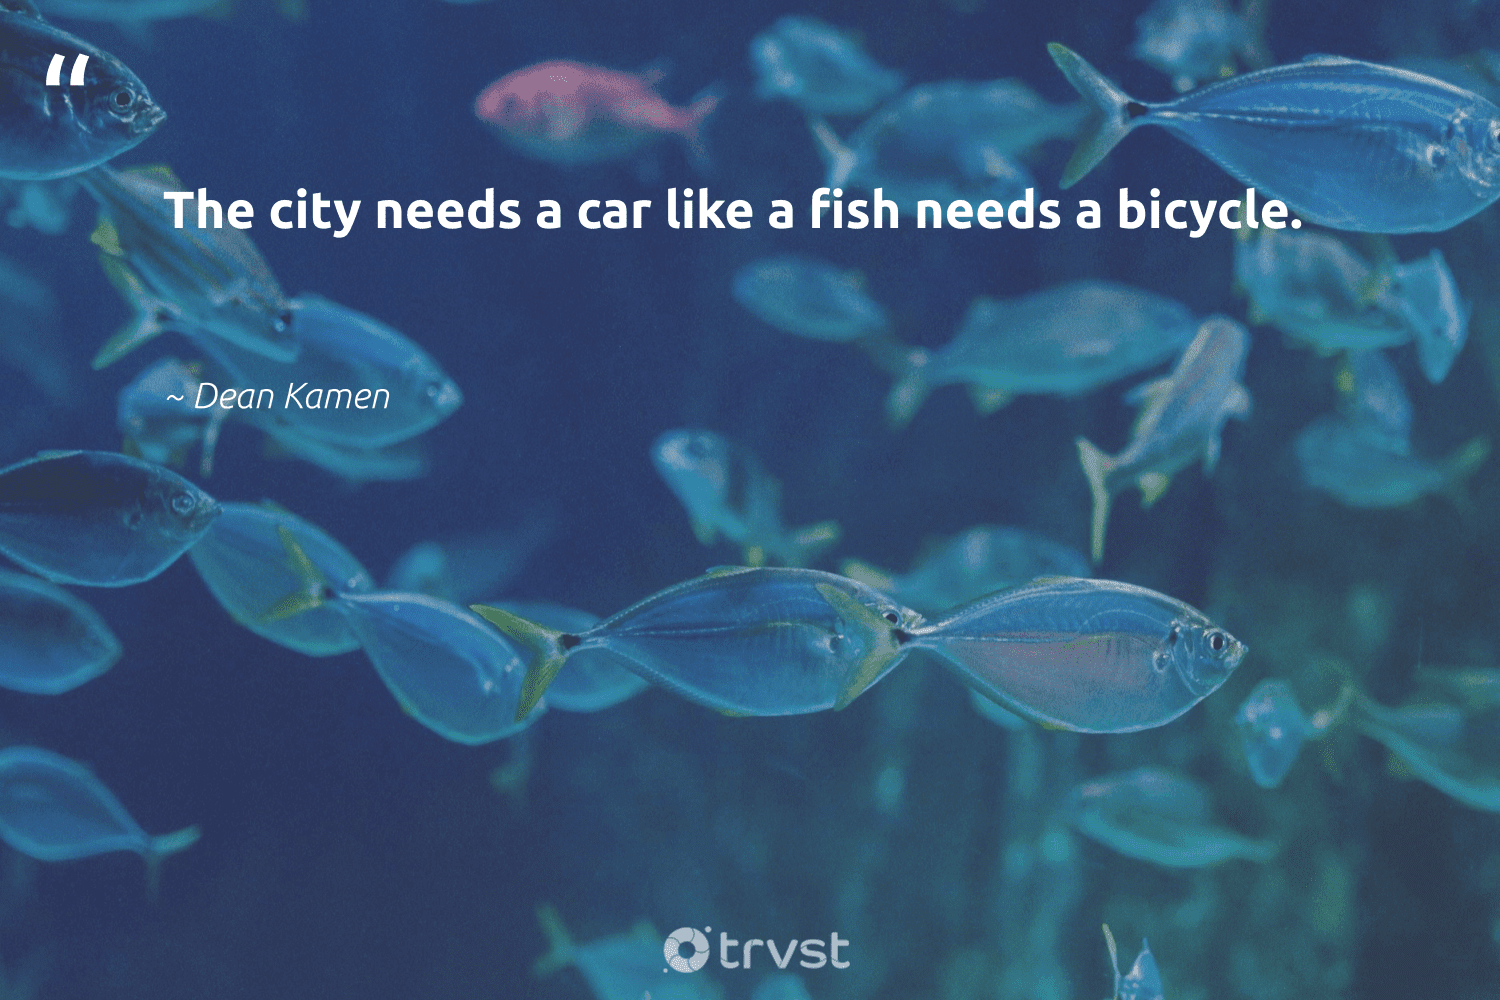 """""""The city needs a car like a fish needs a bicycle.""""  - Dean Kamen #trvst #quotes #fish #biodiversity #dotherightthing #oceans #dosomething #protecttheoceans #socialchange #wildlifeprotection #planetearthfirst #marinelife"""